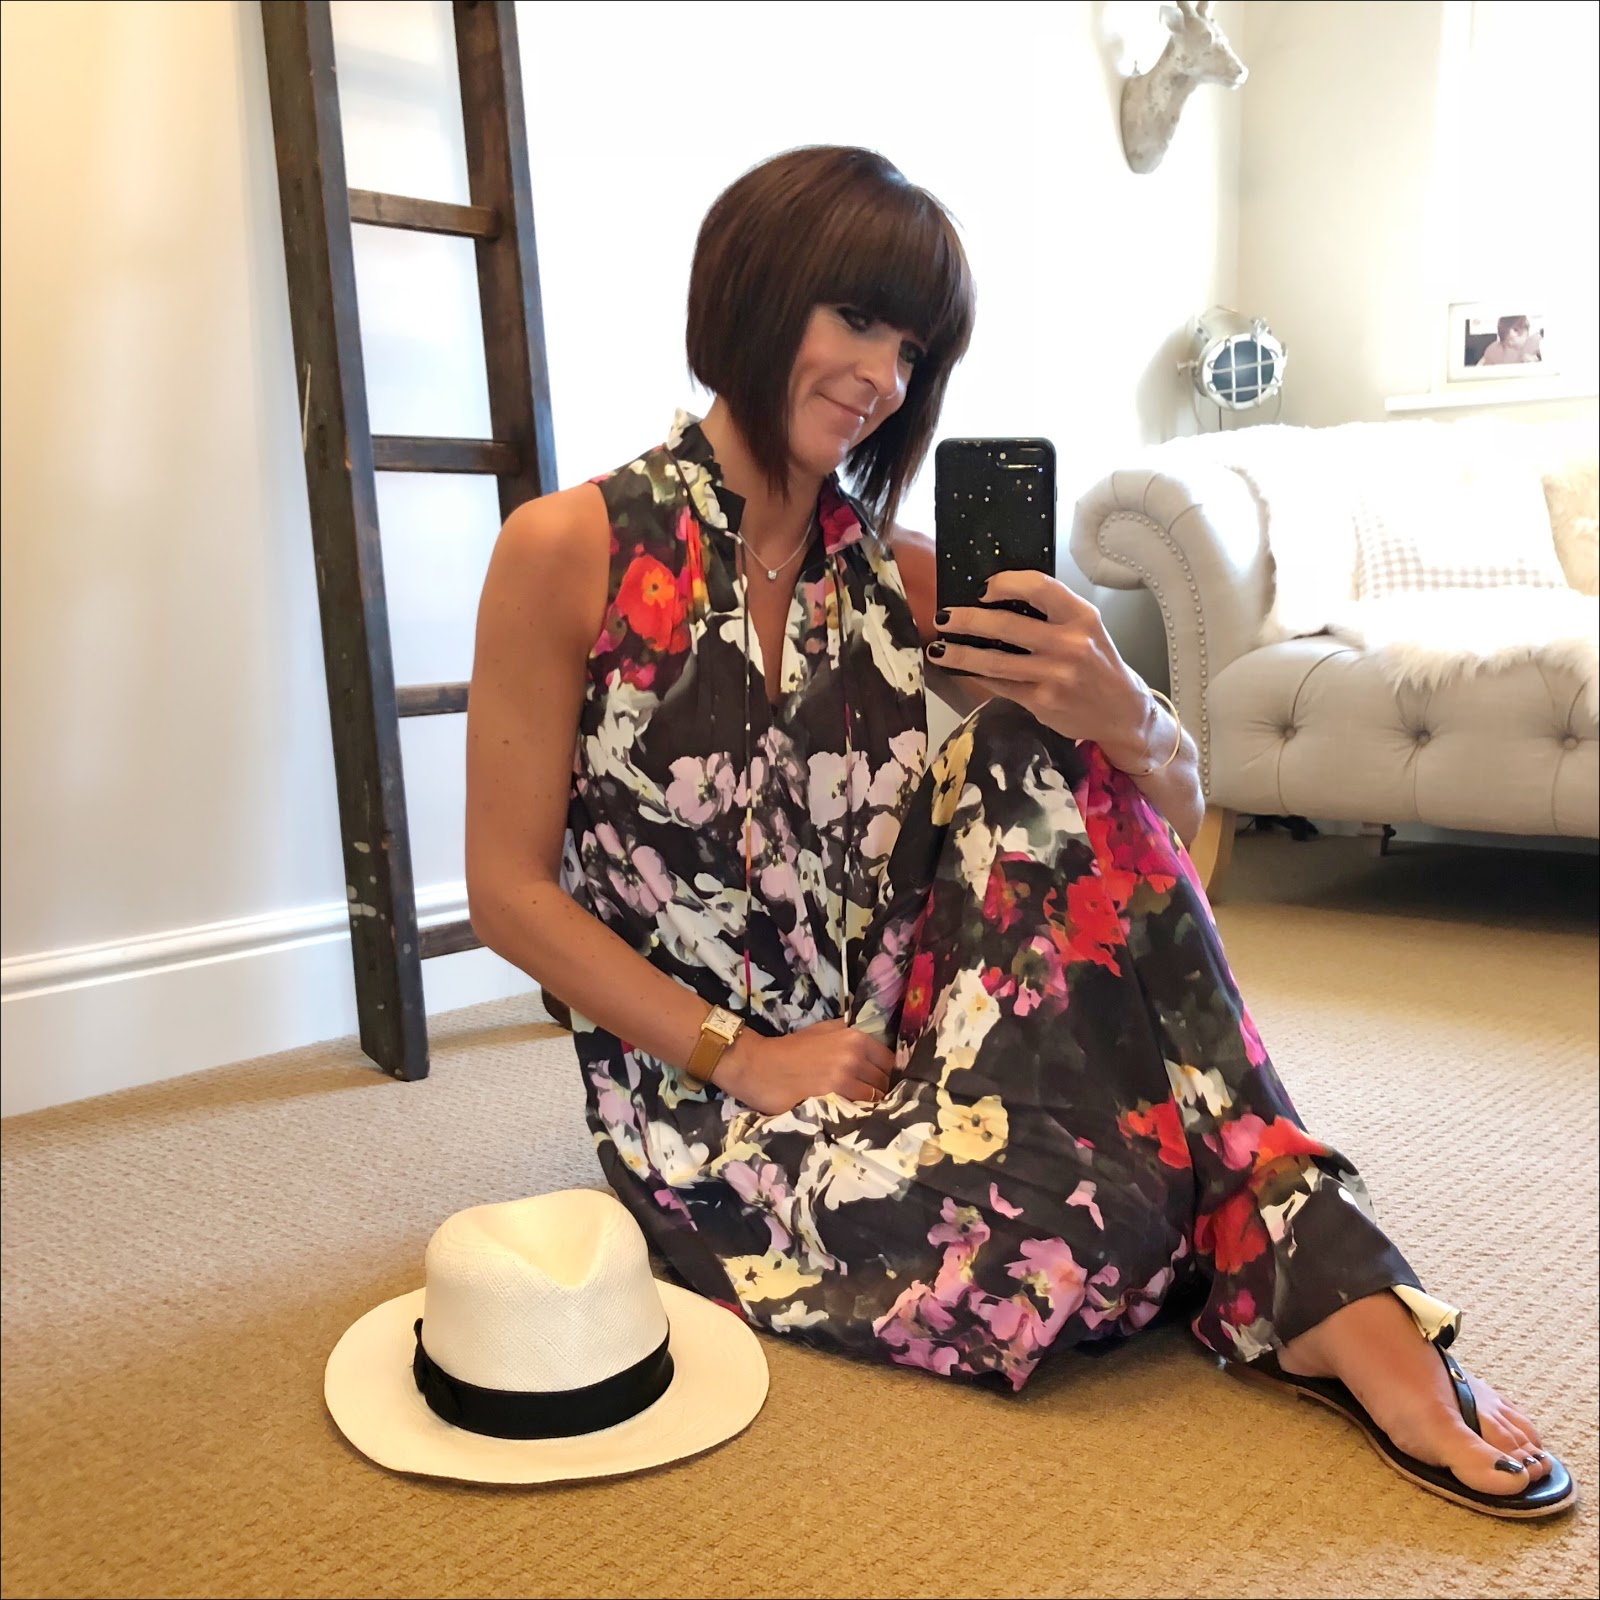 my midlife fashion, marks and spencer handwoven panama hat, iro eyelet embellished leather sandals, and other stories floral maxi dress